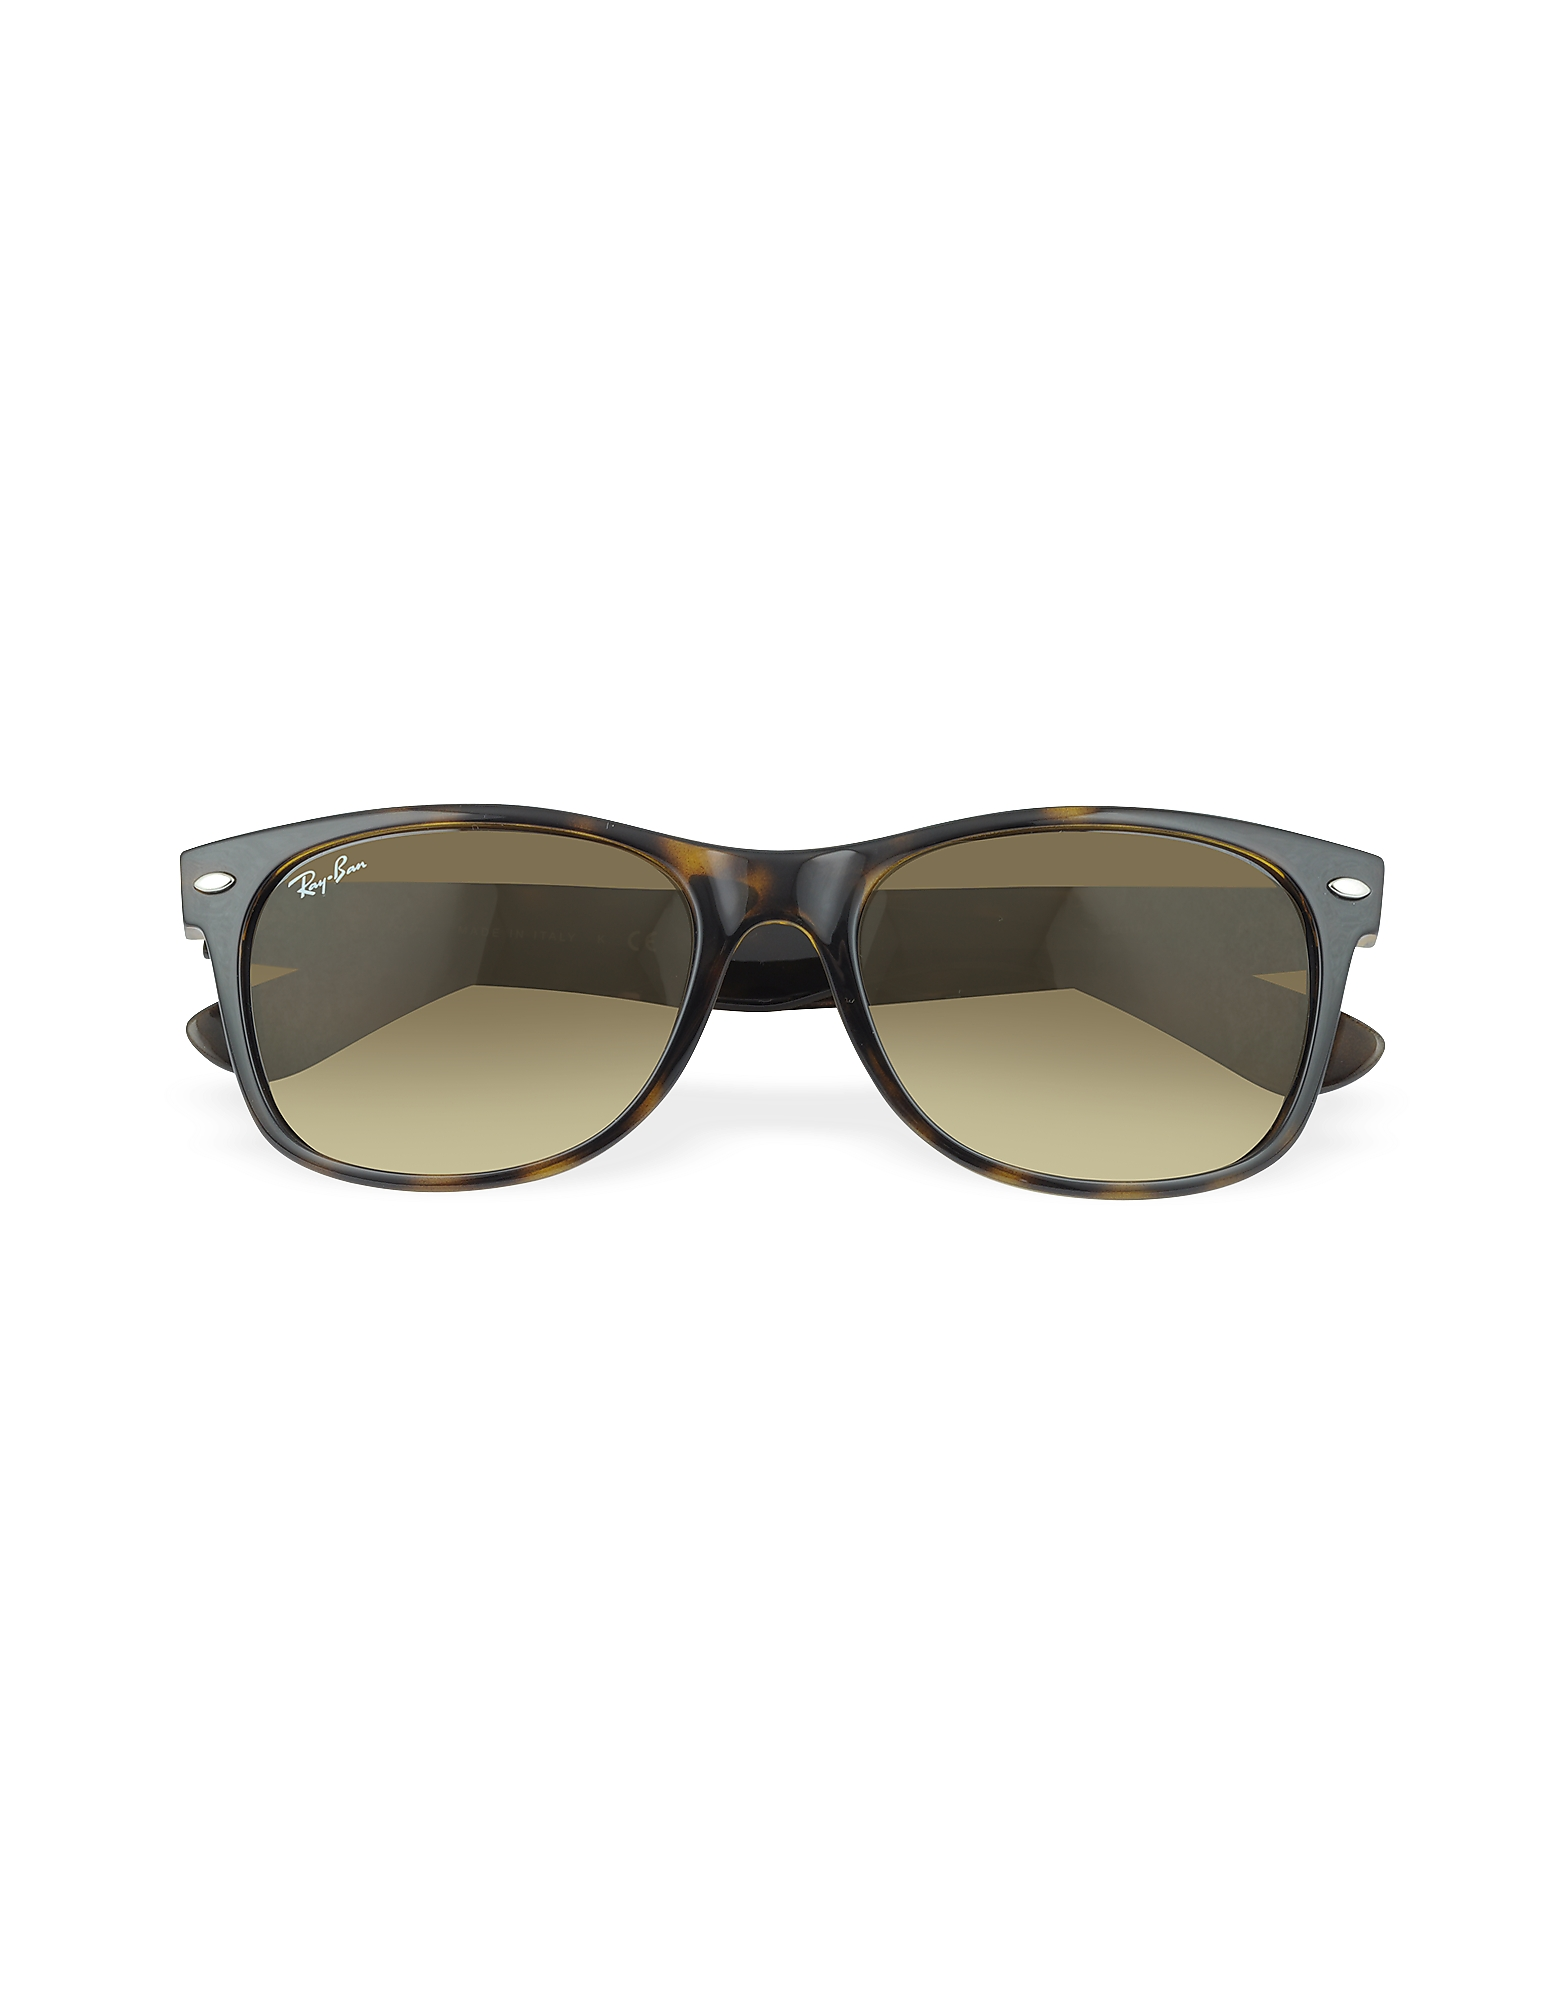 Ray Ban Sunglasses, New Wayfarer - Square Acetate Sunglasses